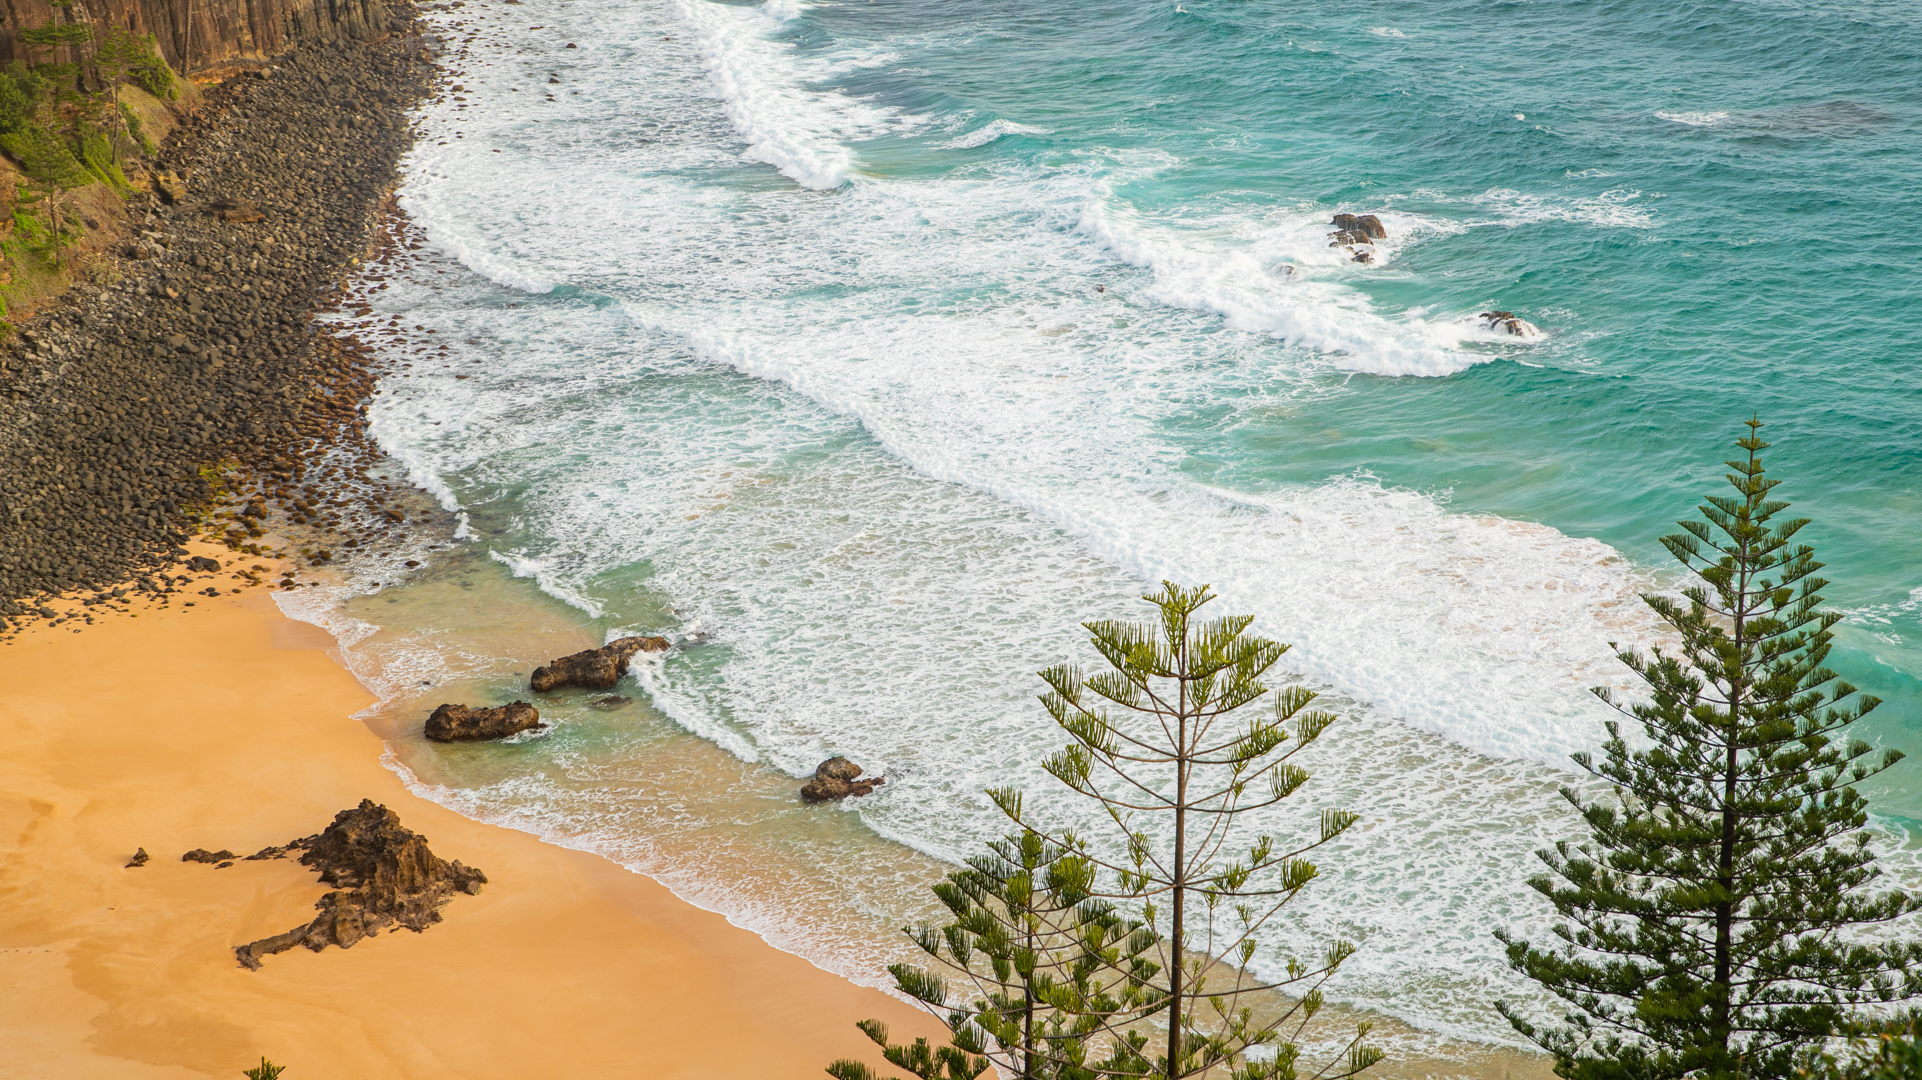 Aeriel view of Anson Bay with waves breaking on golden sand and two pine trees in the foreground.